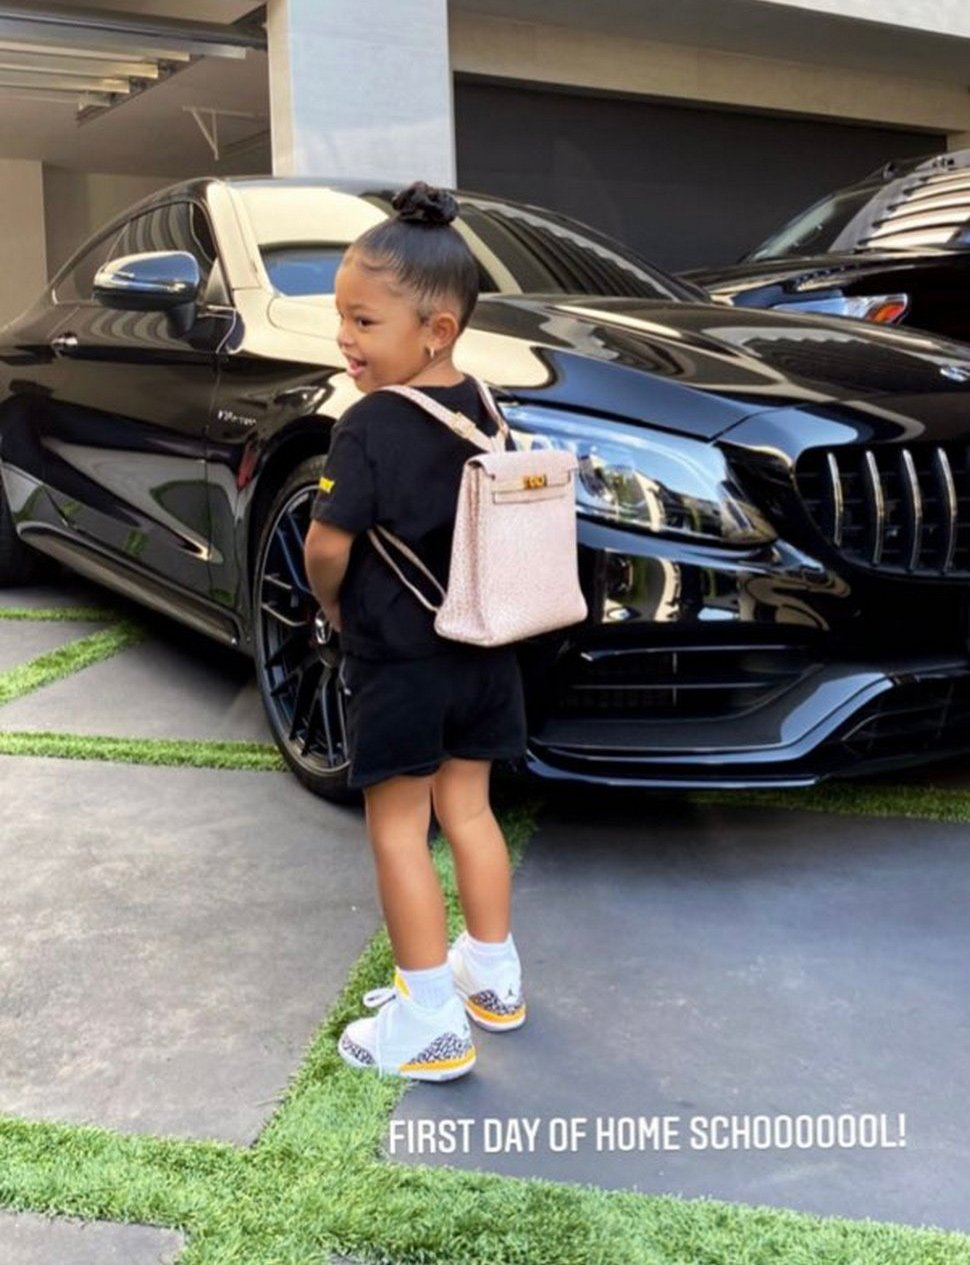 Kylie Jenner gives her 2-year-old daughter a $ 12,000 backpack for her first day of school- mongersmintt